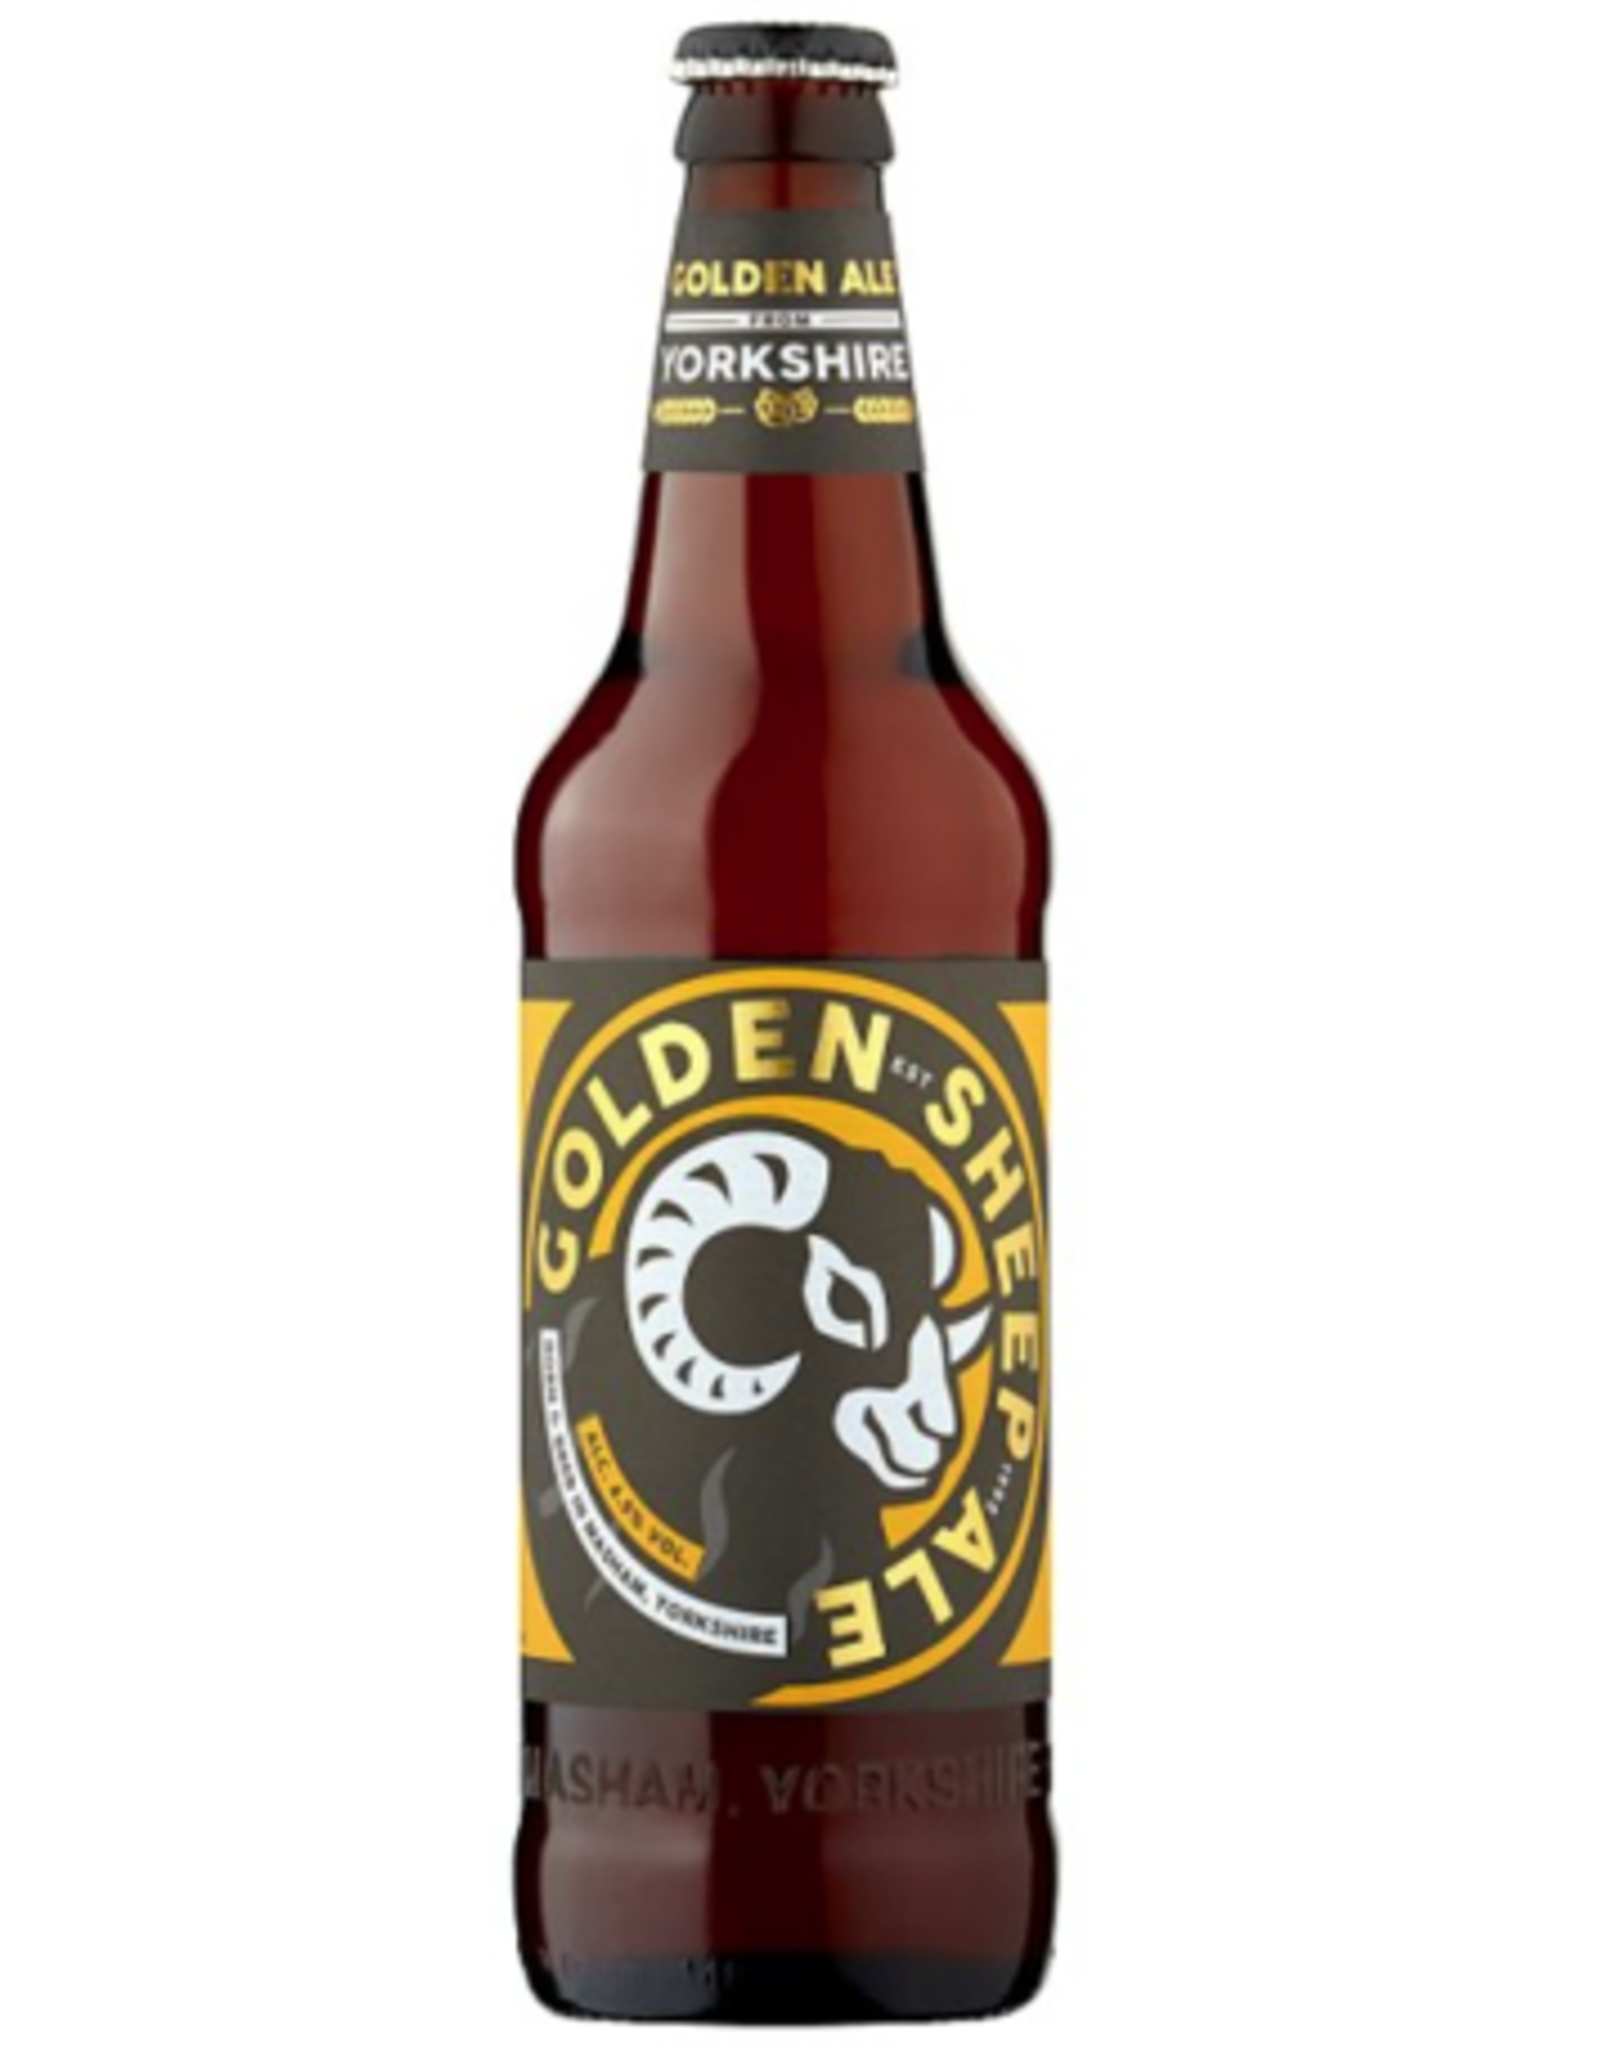 Black Sheep Brewery Black Sheep Golden Sheep Ale 500ml